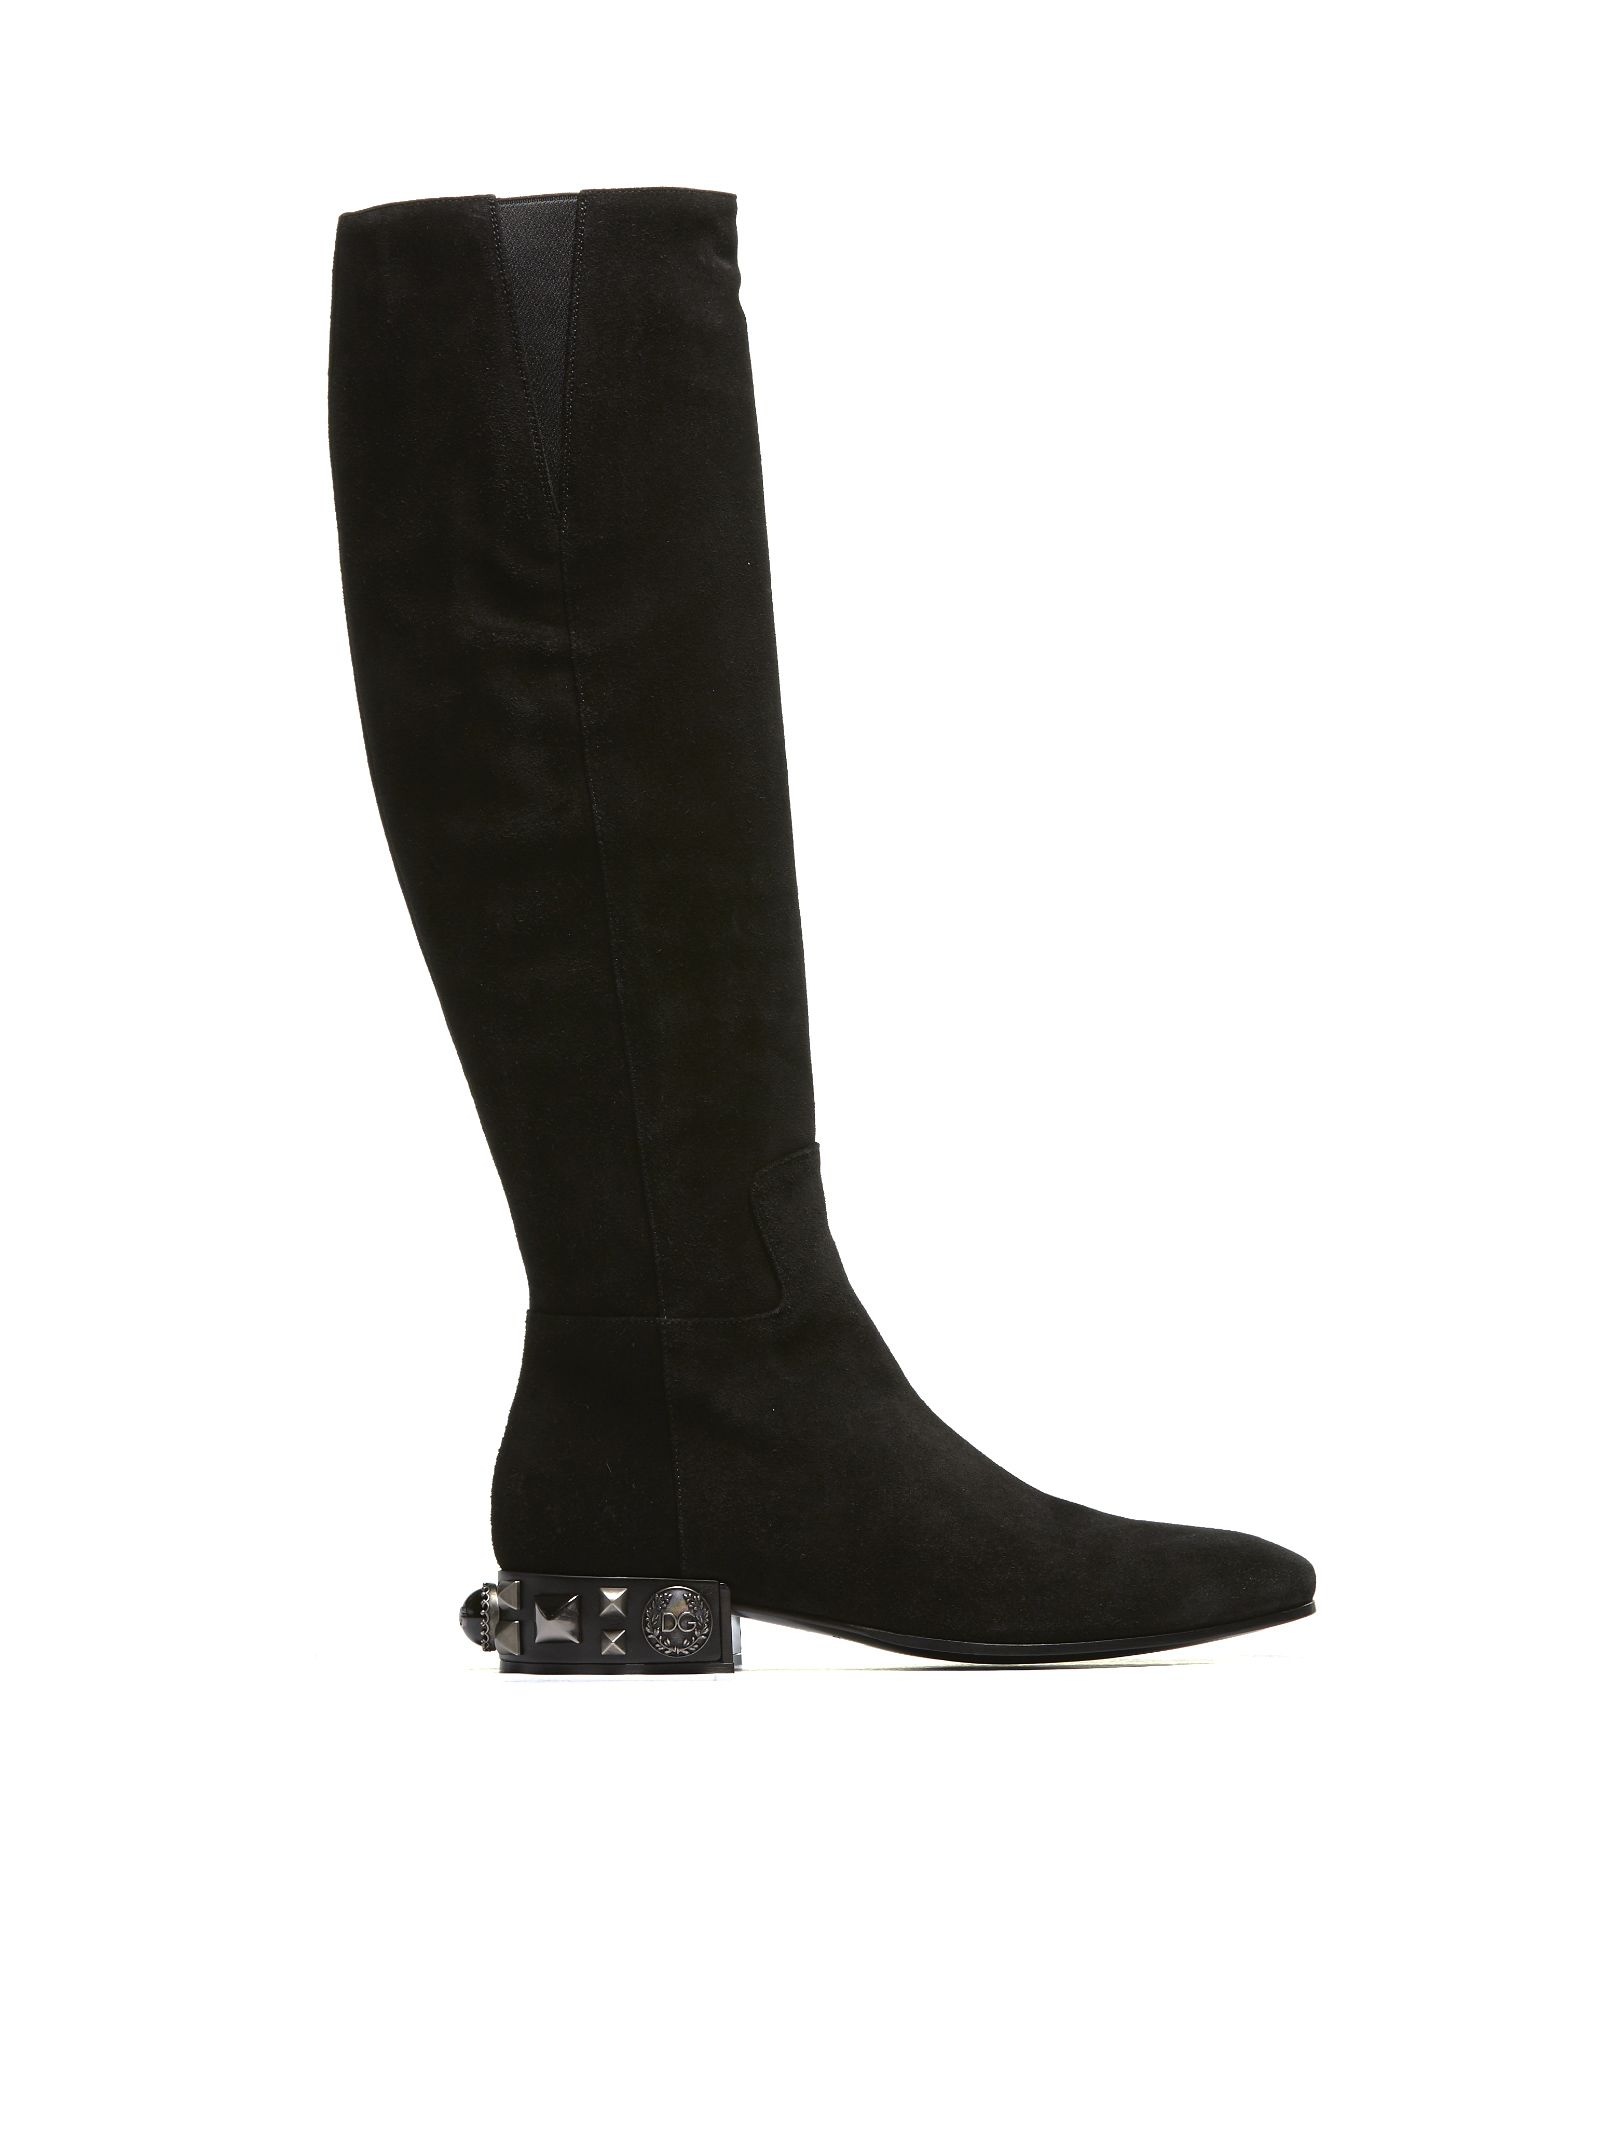 DOLCE & GABBANA LEATHER OVER THE KNEE BOOTS